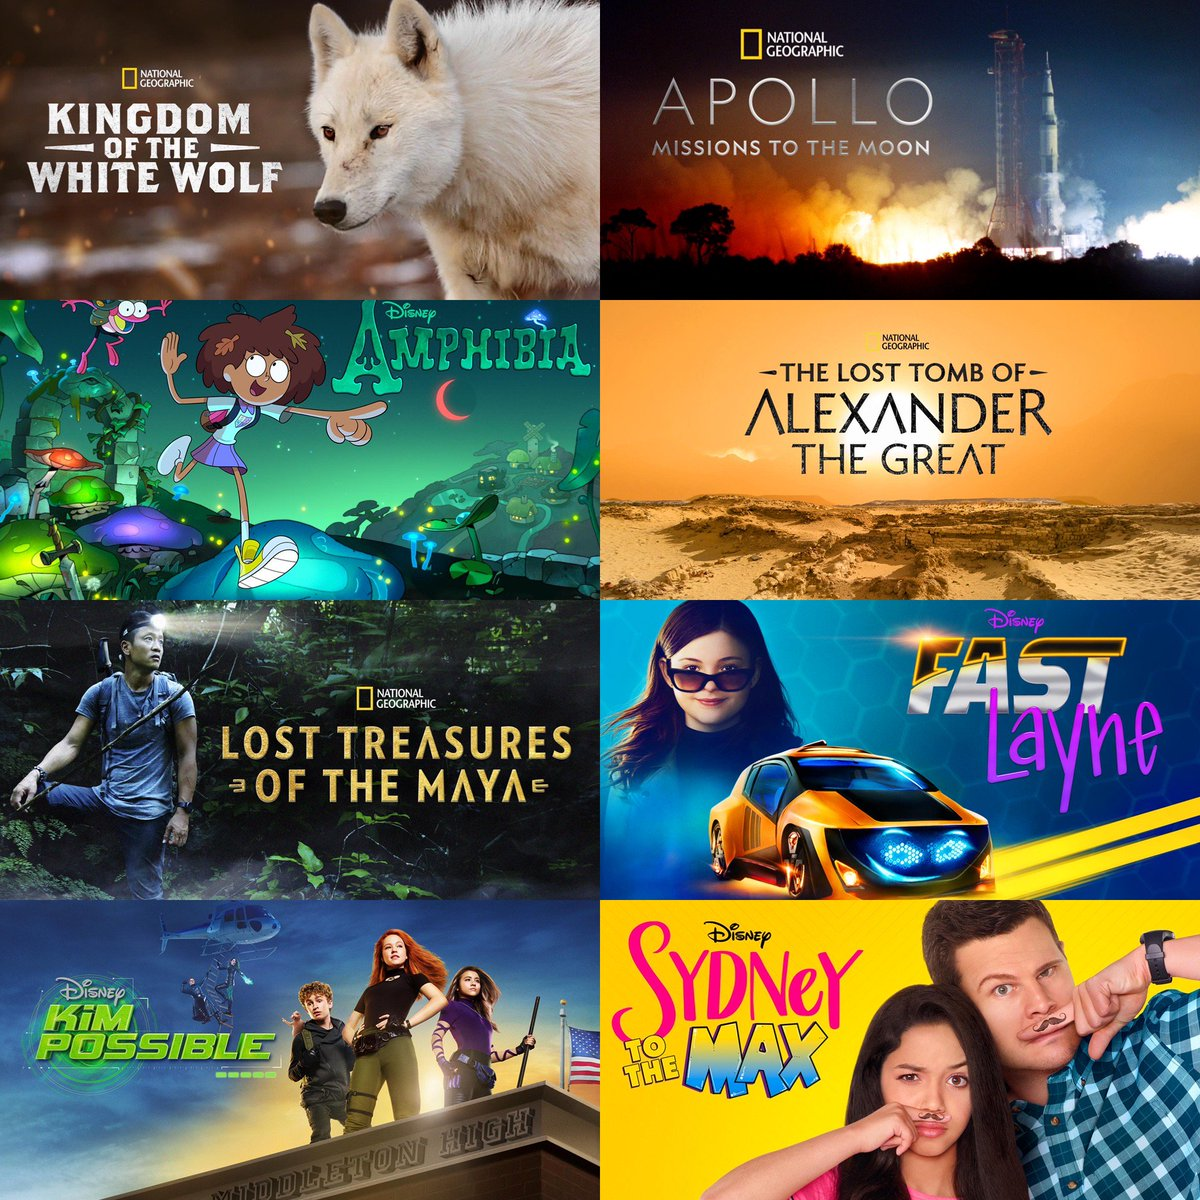 @Disney  has posted a preview of shows and movies that will be on  @disneyplus  , which ones are you excited about hope will be on it? #Disney #DisneyPlus #NatGeo #Amphibia #FastLayne #AlexanderTheGreat #LostTreasuresoftheMaya #ApolloMissionsToMars